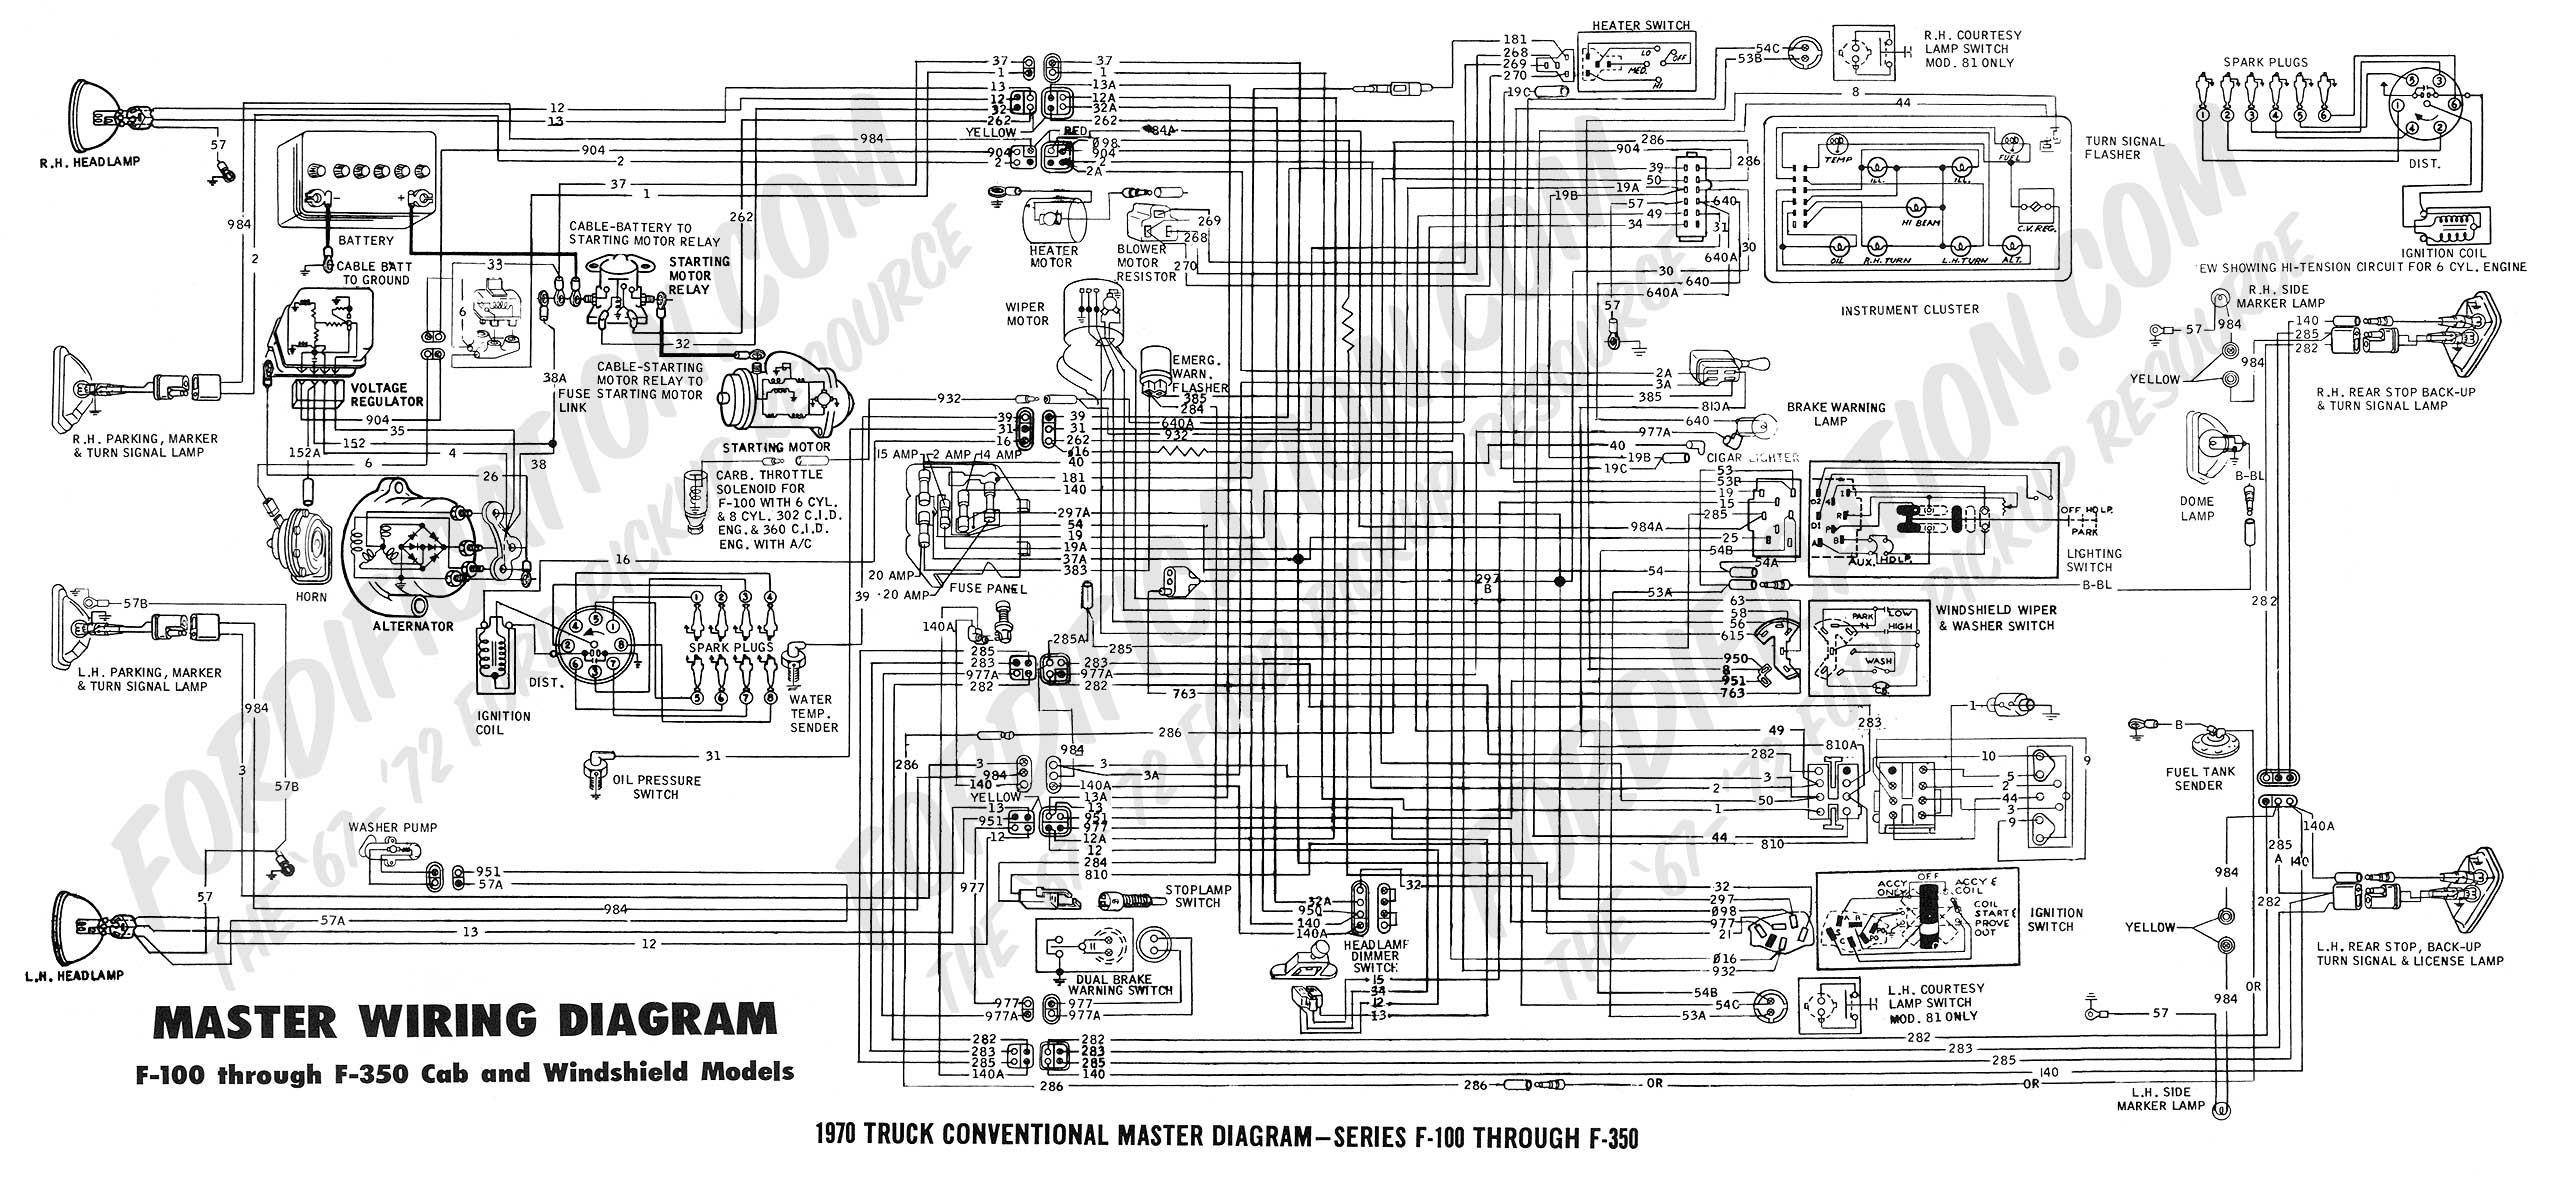 wiring diagram 70_master ford truck technical drawings and schematics section h wiring f100 wiring diagram at virtualis.co